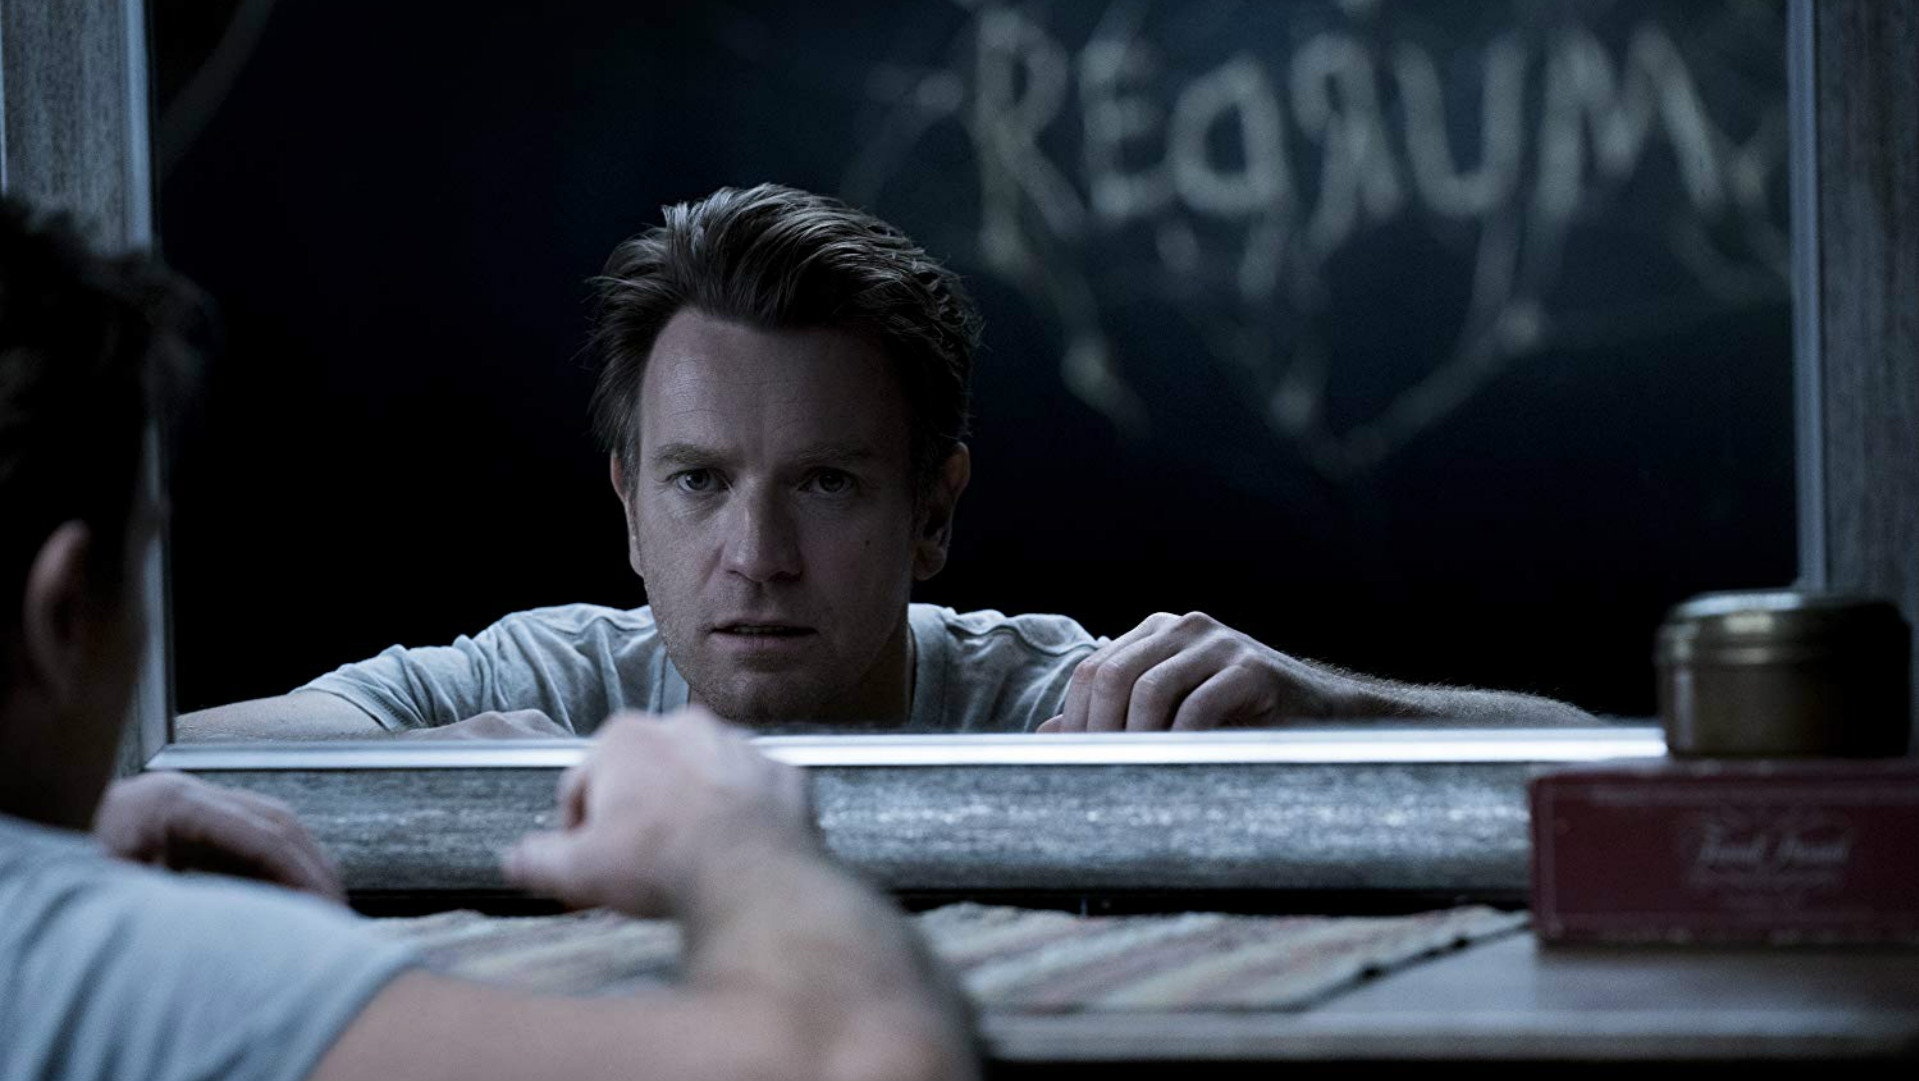 Doctor Sleep Trailer: The Shining Sequel Drops This November